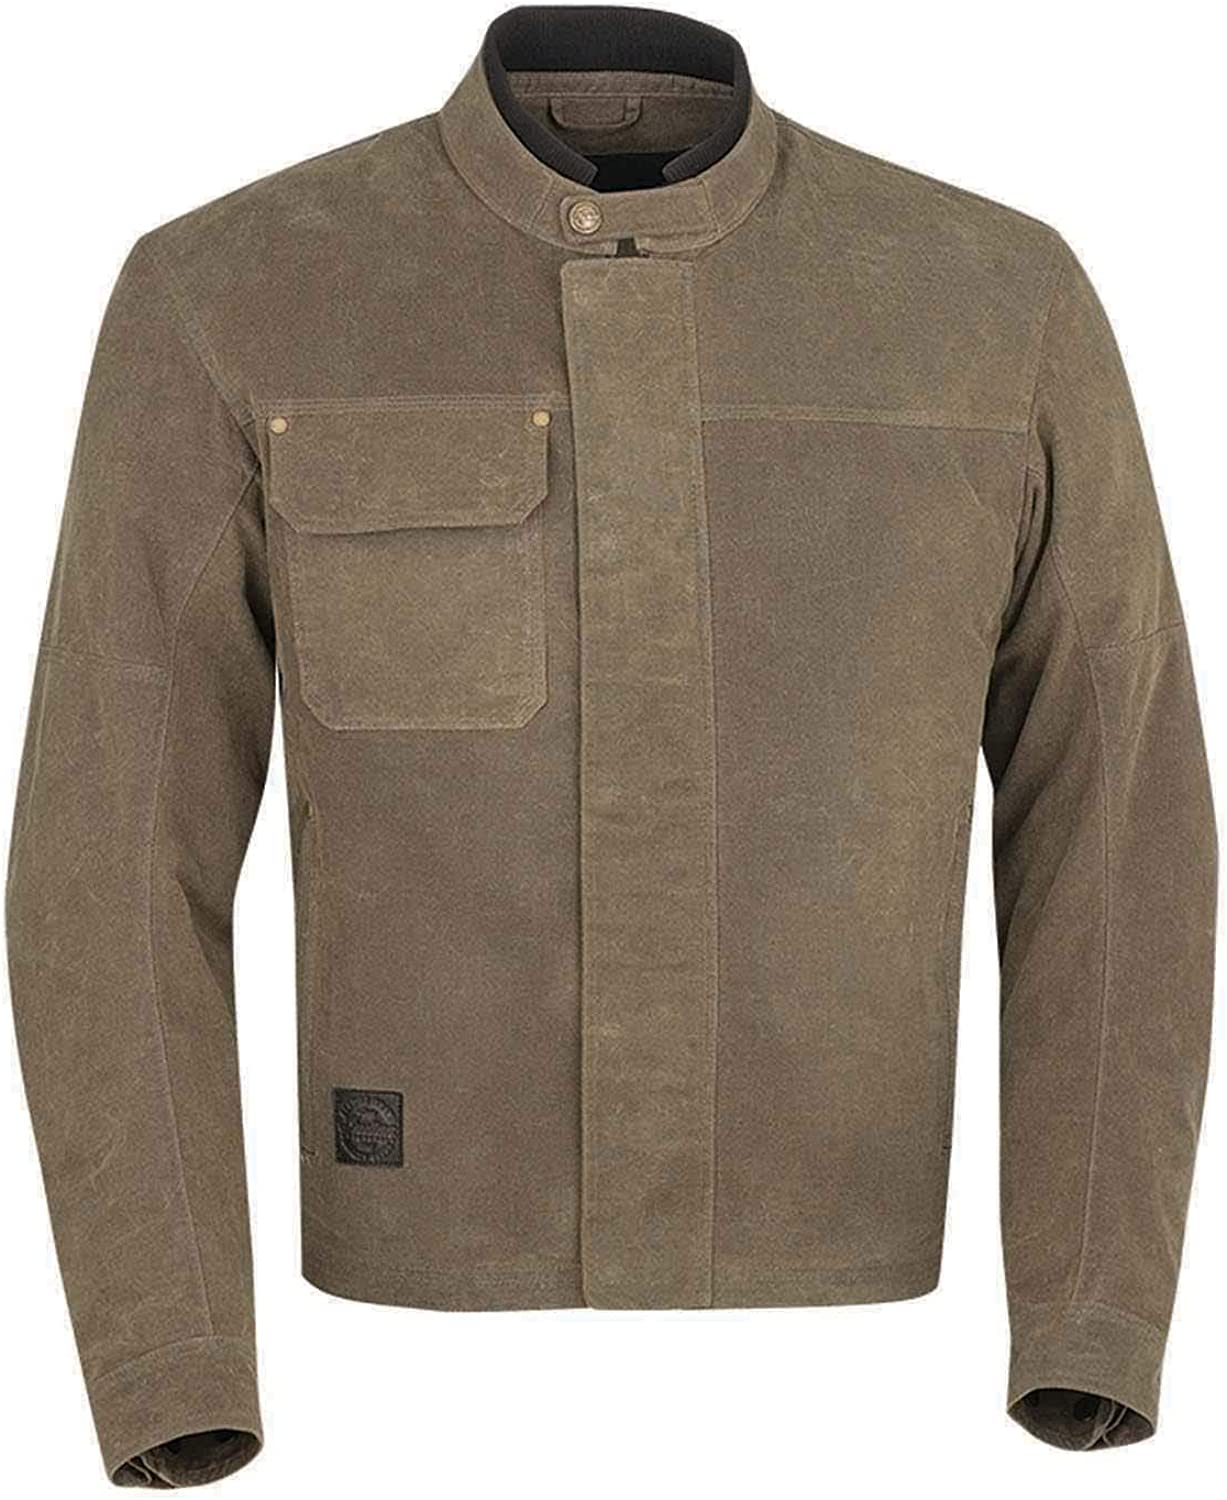 Indian Motorcycle Men's Waxed Cotton Riding Jacket, Olive